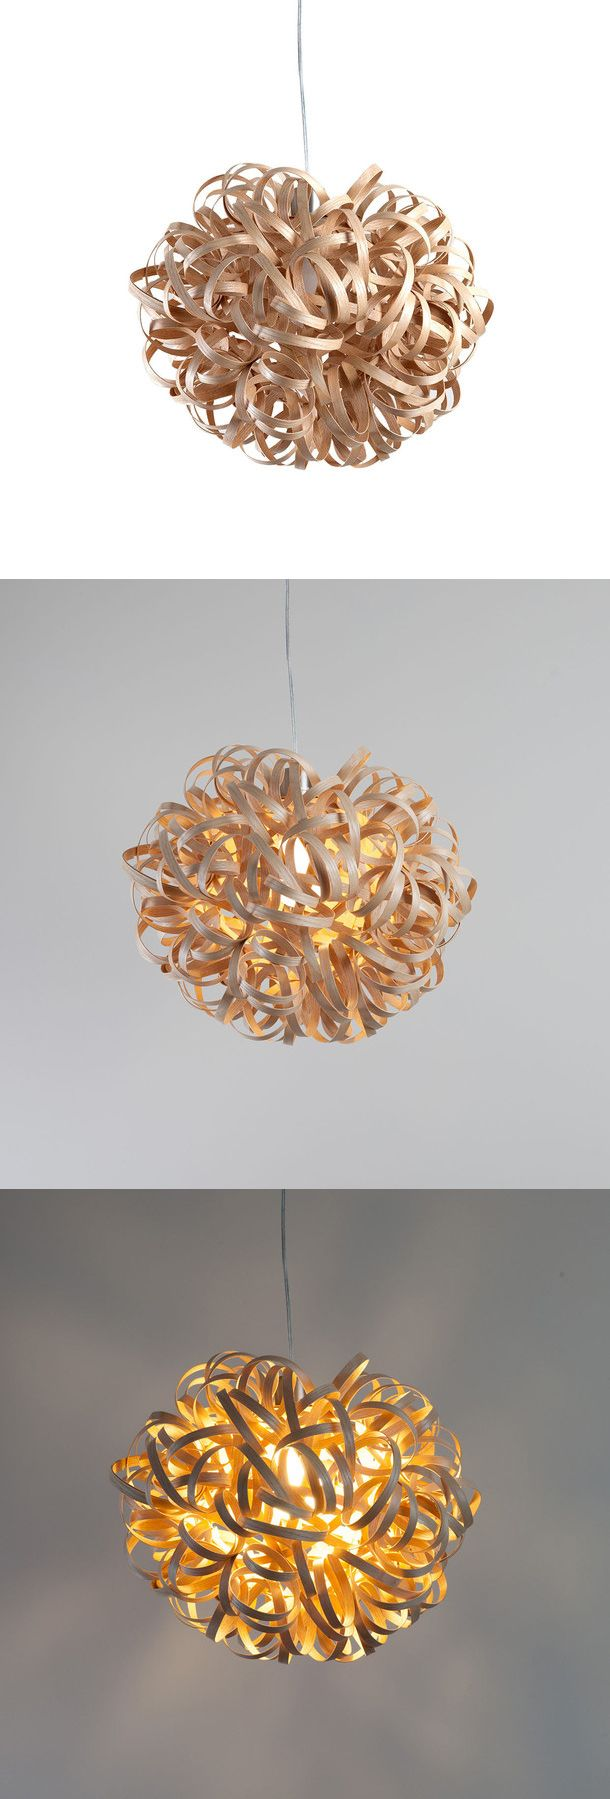 Pendant No 1 Ash Medium By Tom Raffield Consists Of Over 260 Feet Of Sustainably Sourced Ash Which Has Been Woven Diy Lamp Light